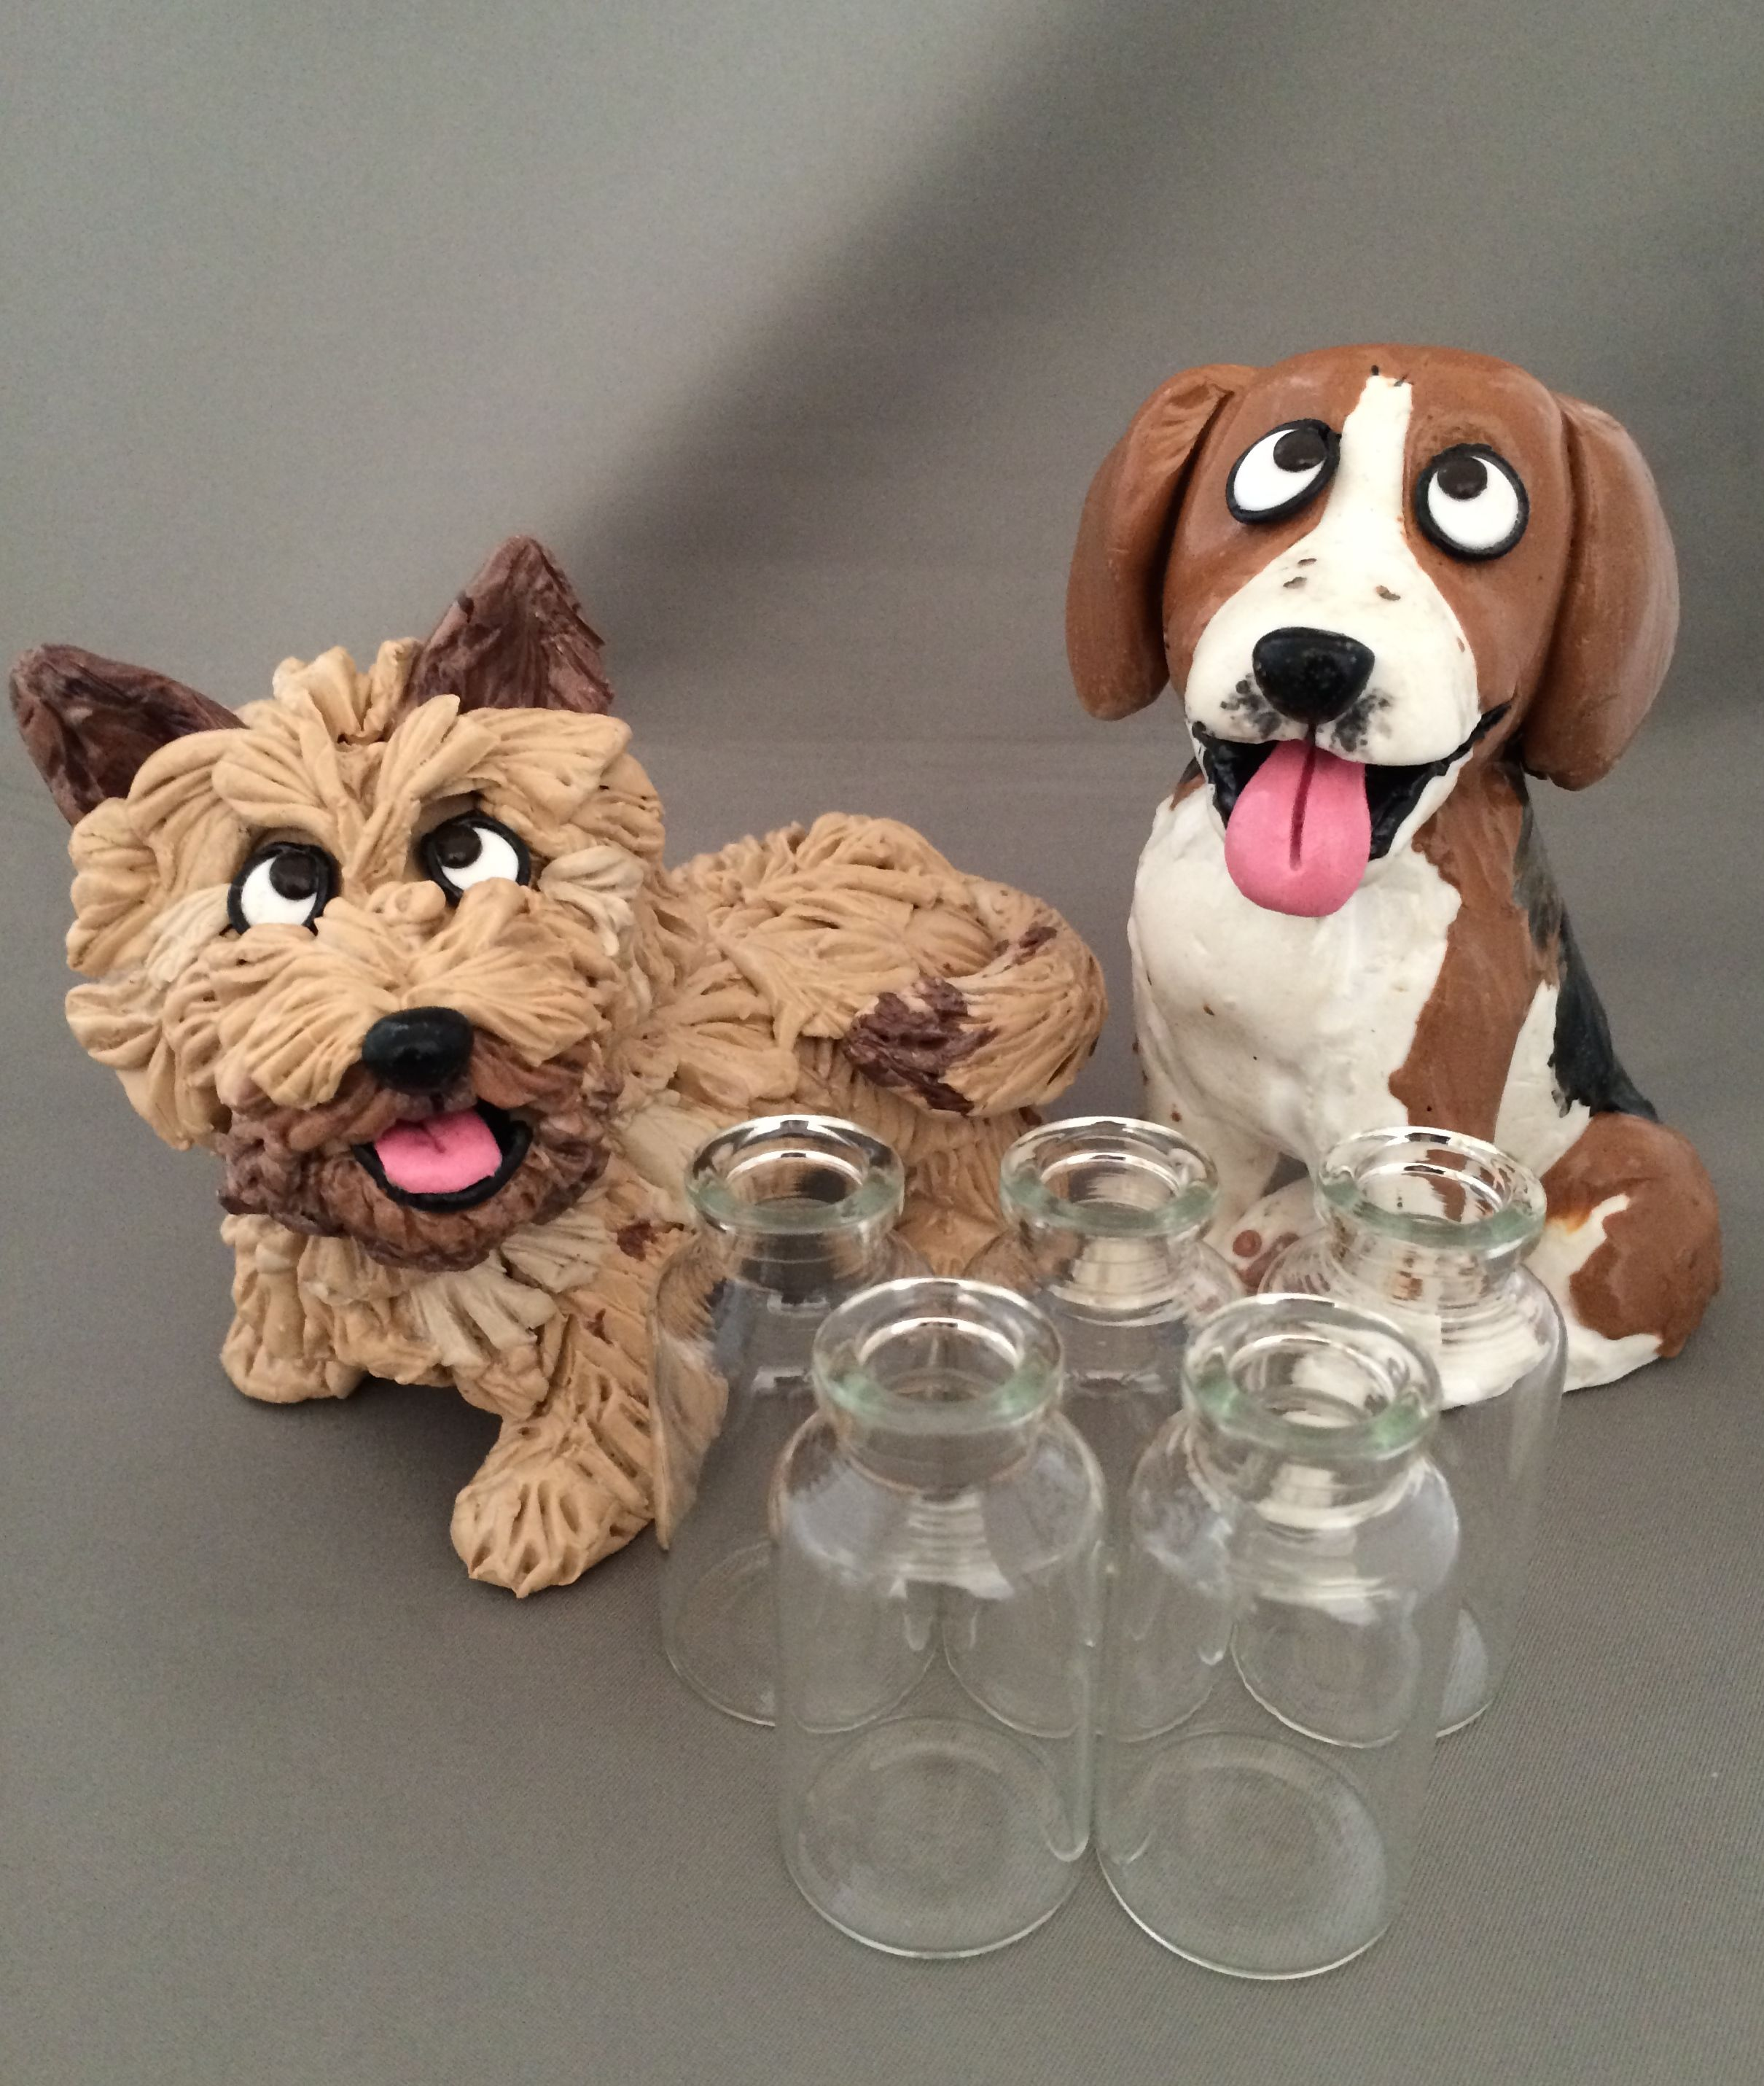 What makes these dogs Hounds of Hope? It's the bottle